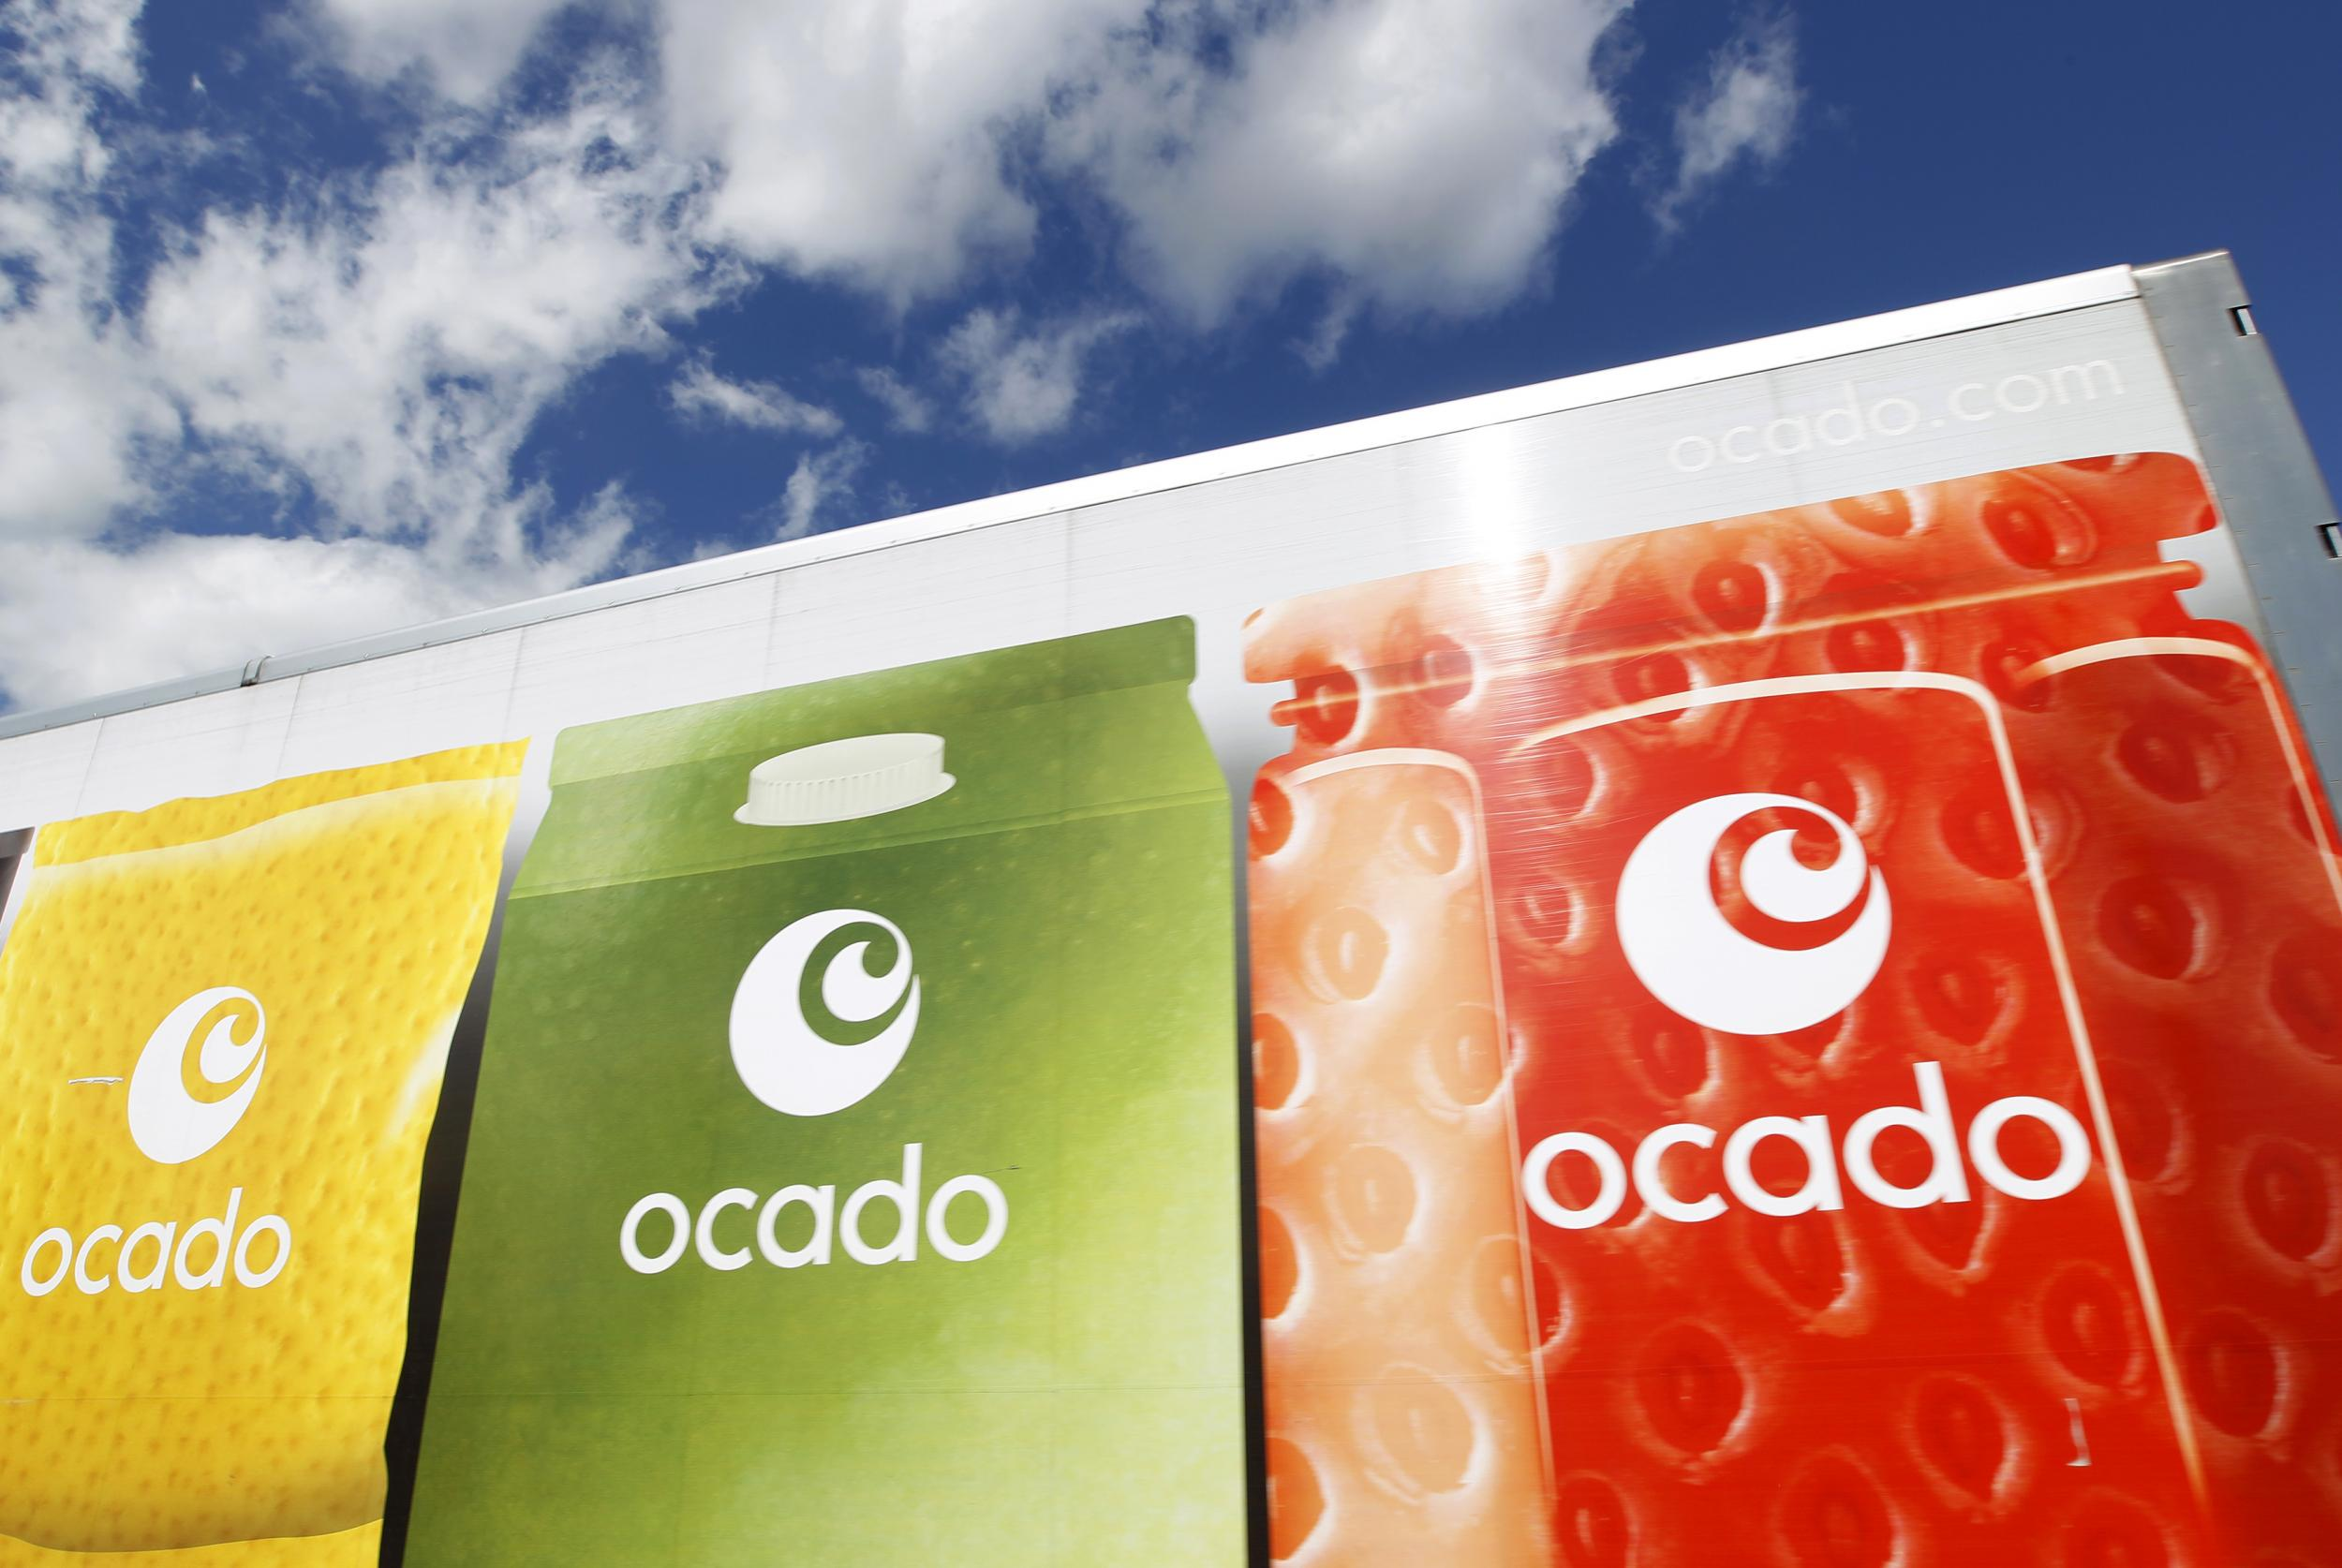 Ocado shares rise following deal with Canada's second largest supermarket